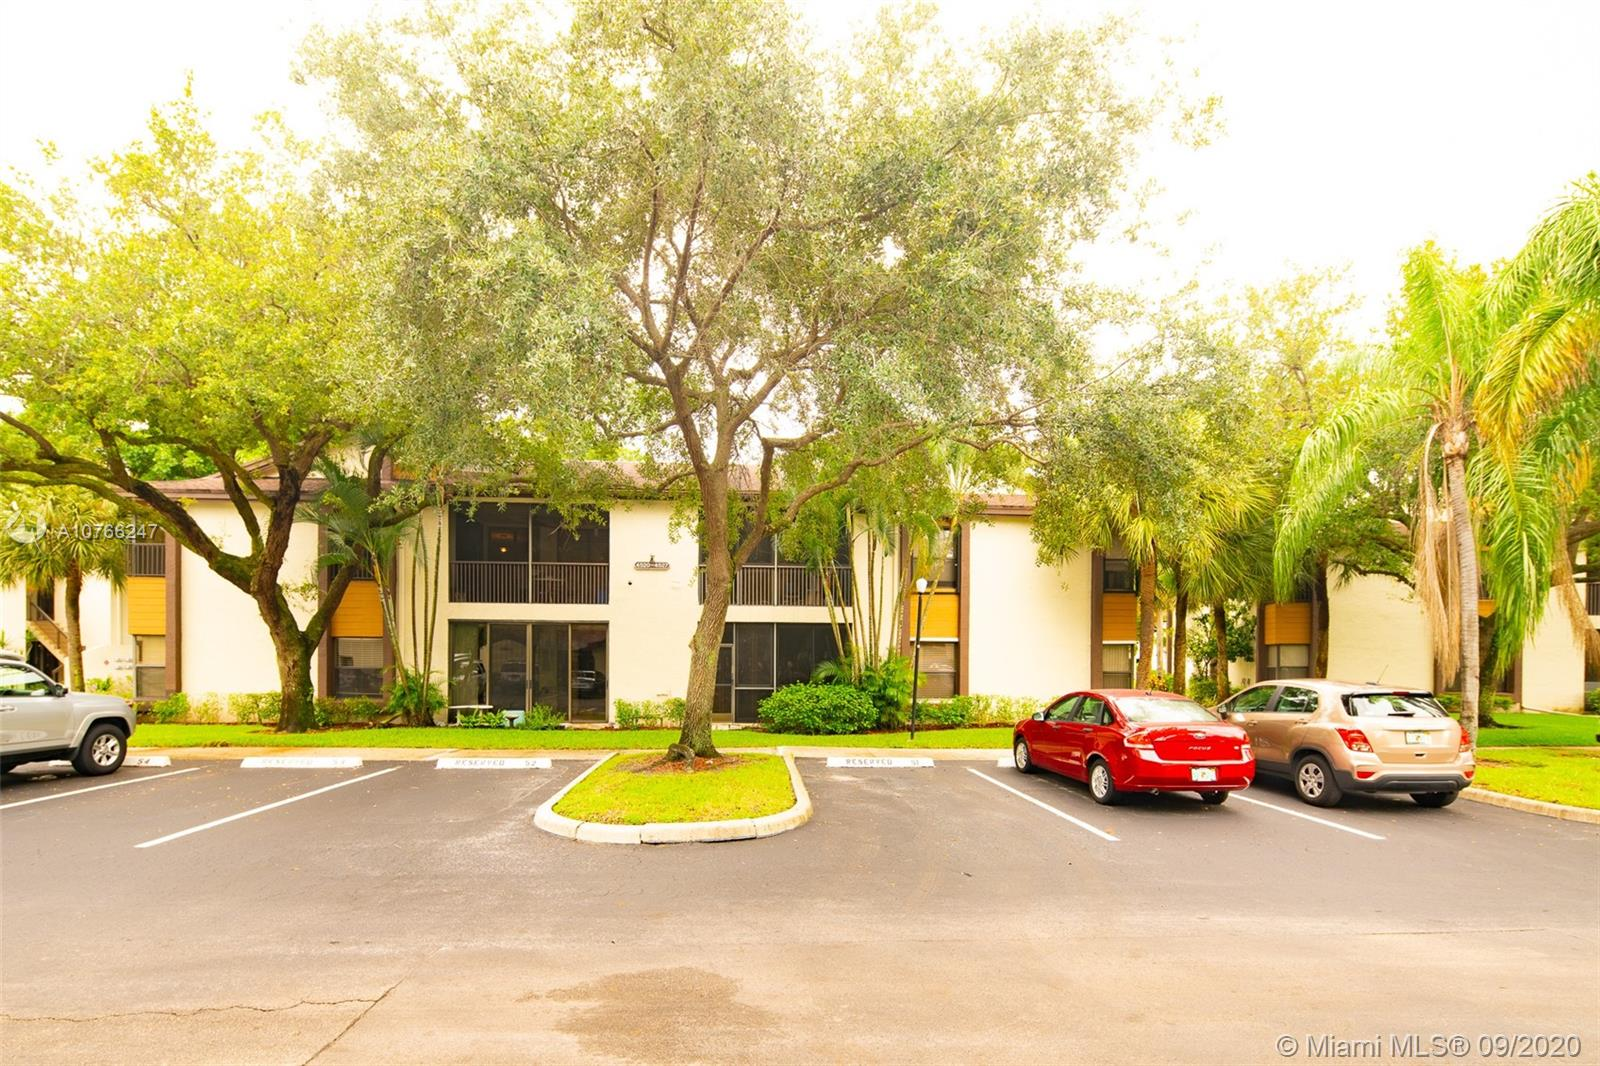 Condo at Baywood village. 3 bedrooms 2 bathrooms. Tile flooring throughout common areas with carpet in the bedrooms. Balcony, laundry area, and more. Come take a look today.